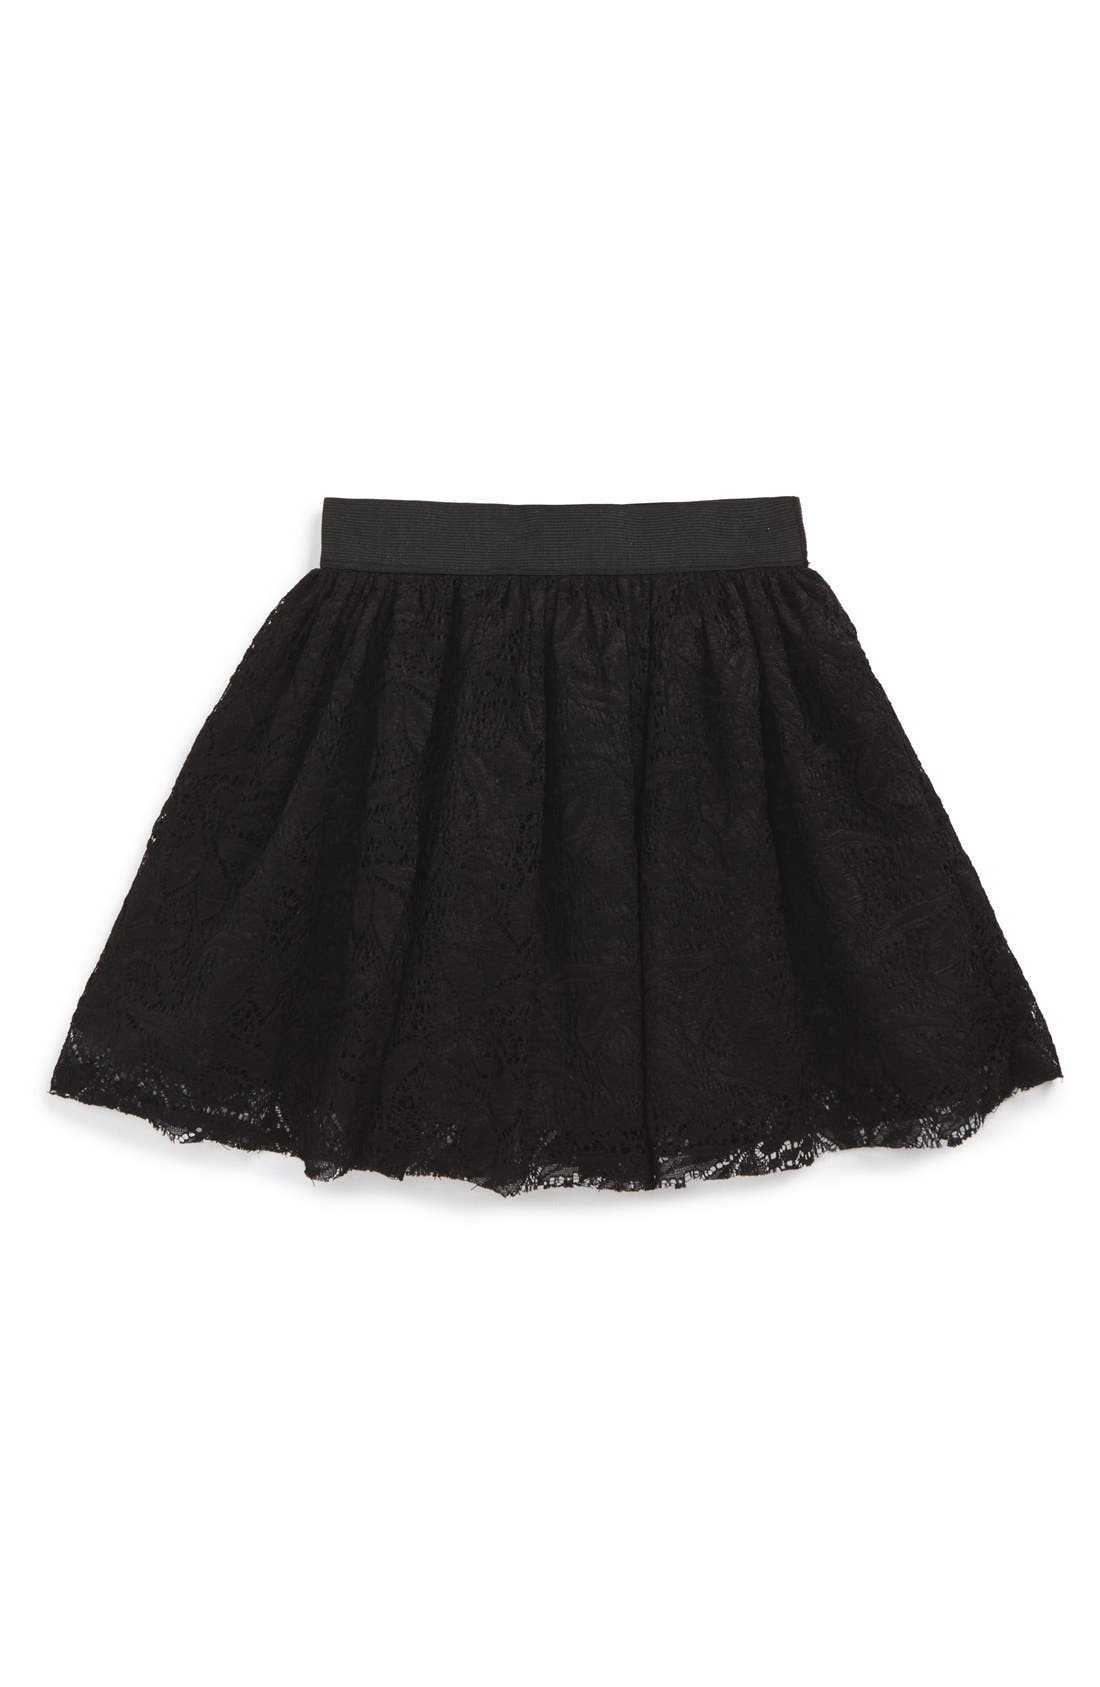 Main Image - Pippa & Julie Lace Skirt (Toddler Girls & Little Girls)